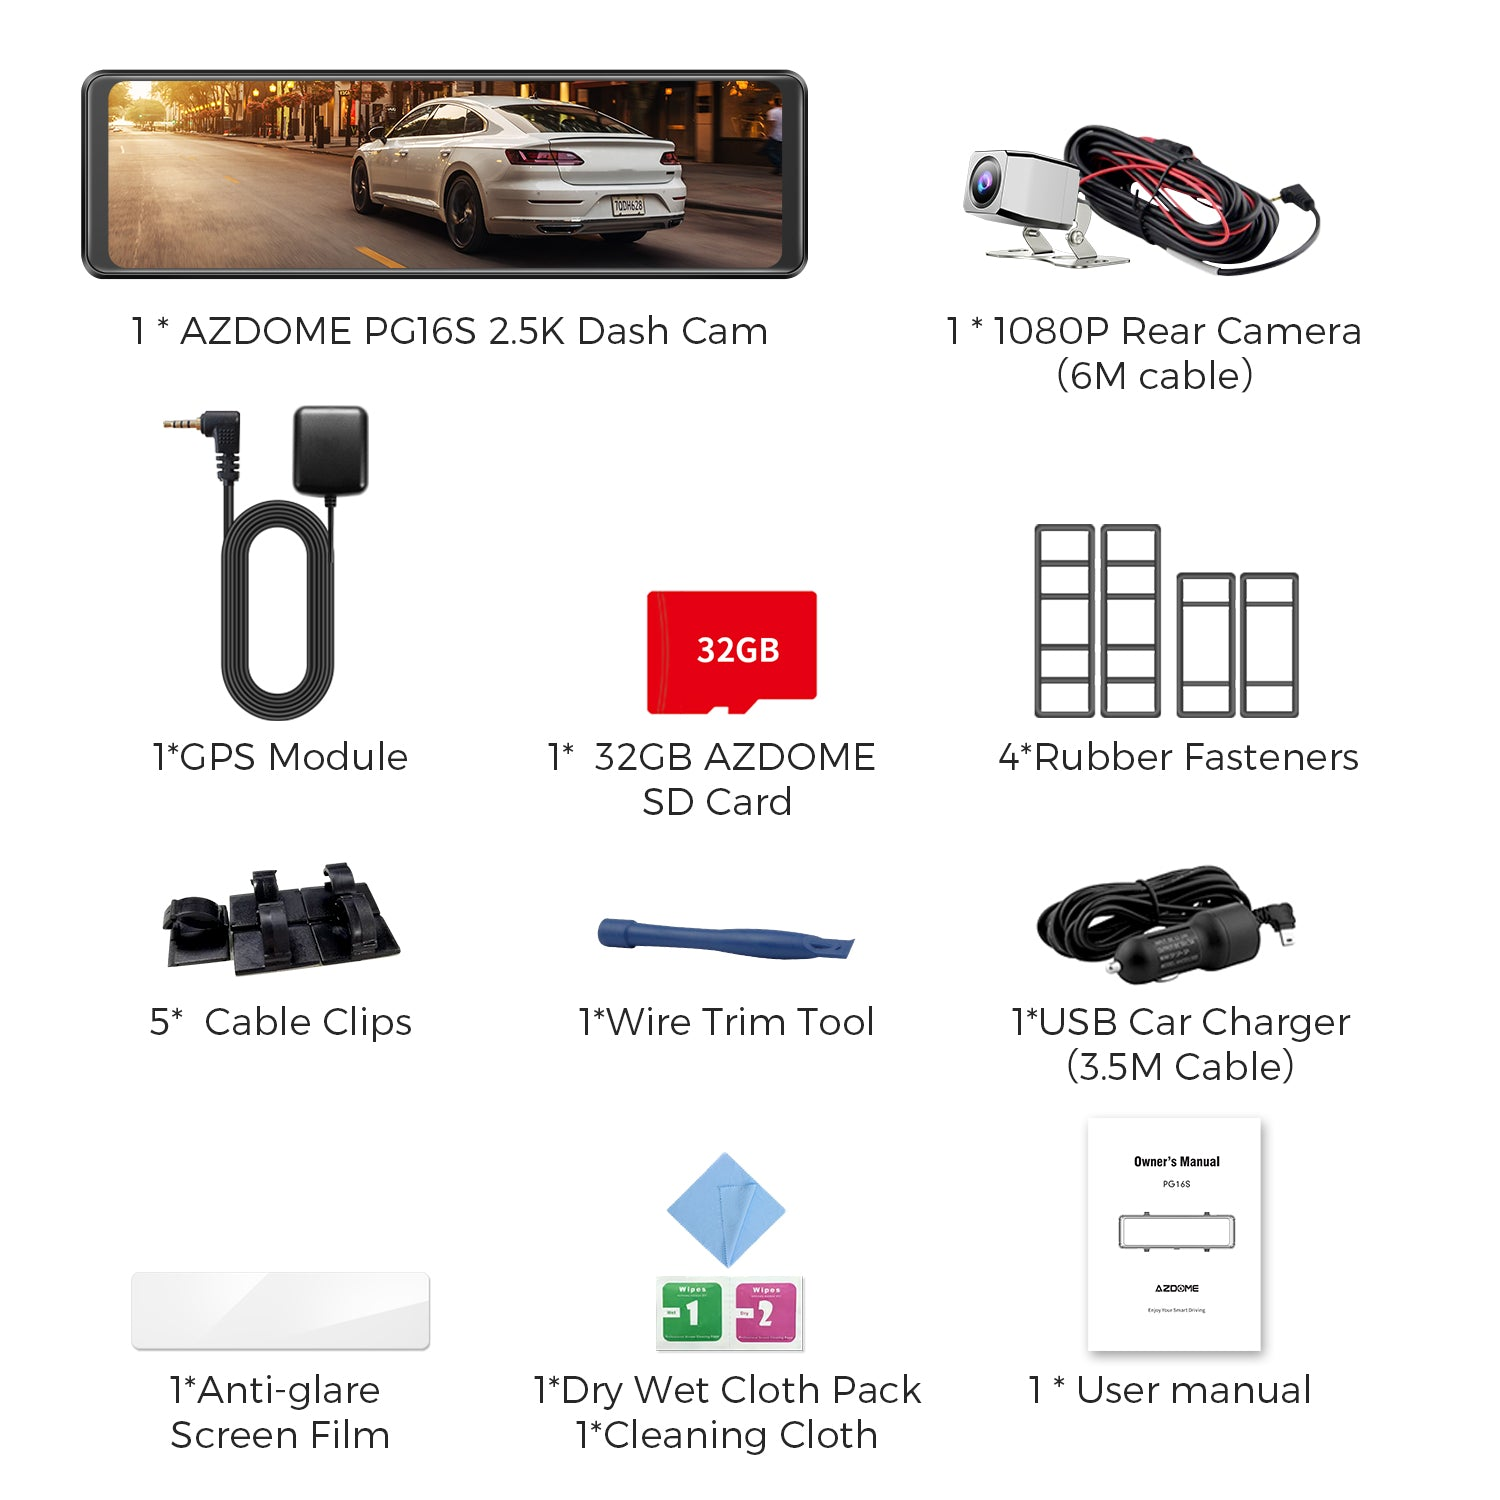 AZDOME PG16S Package Specification